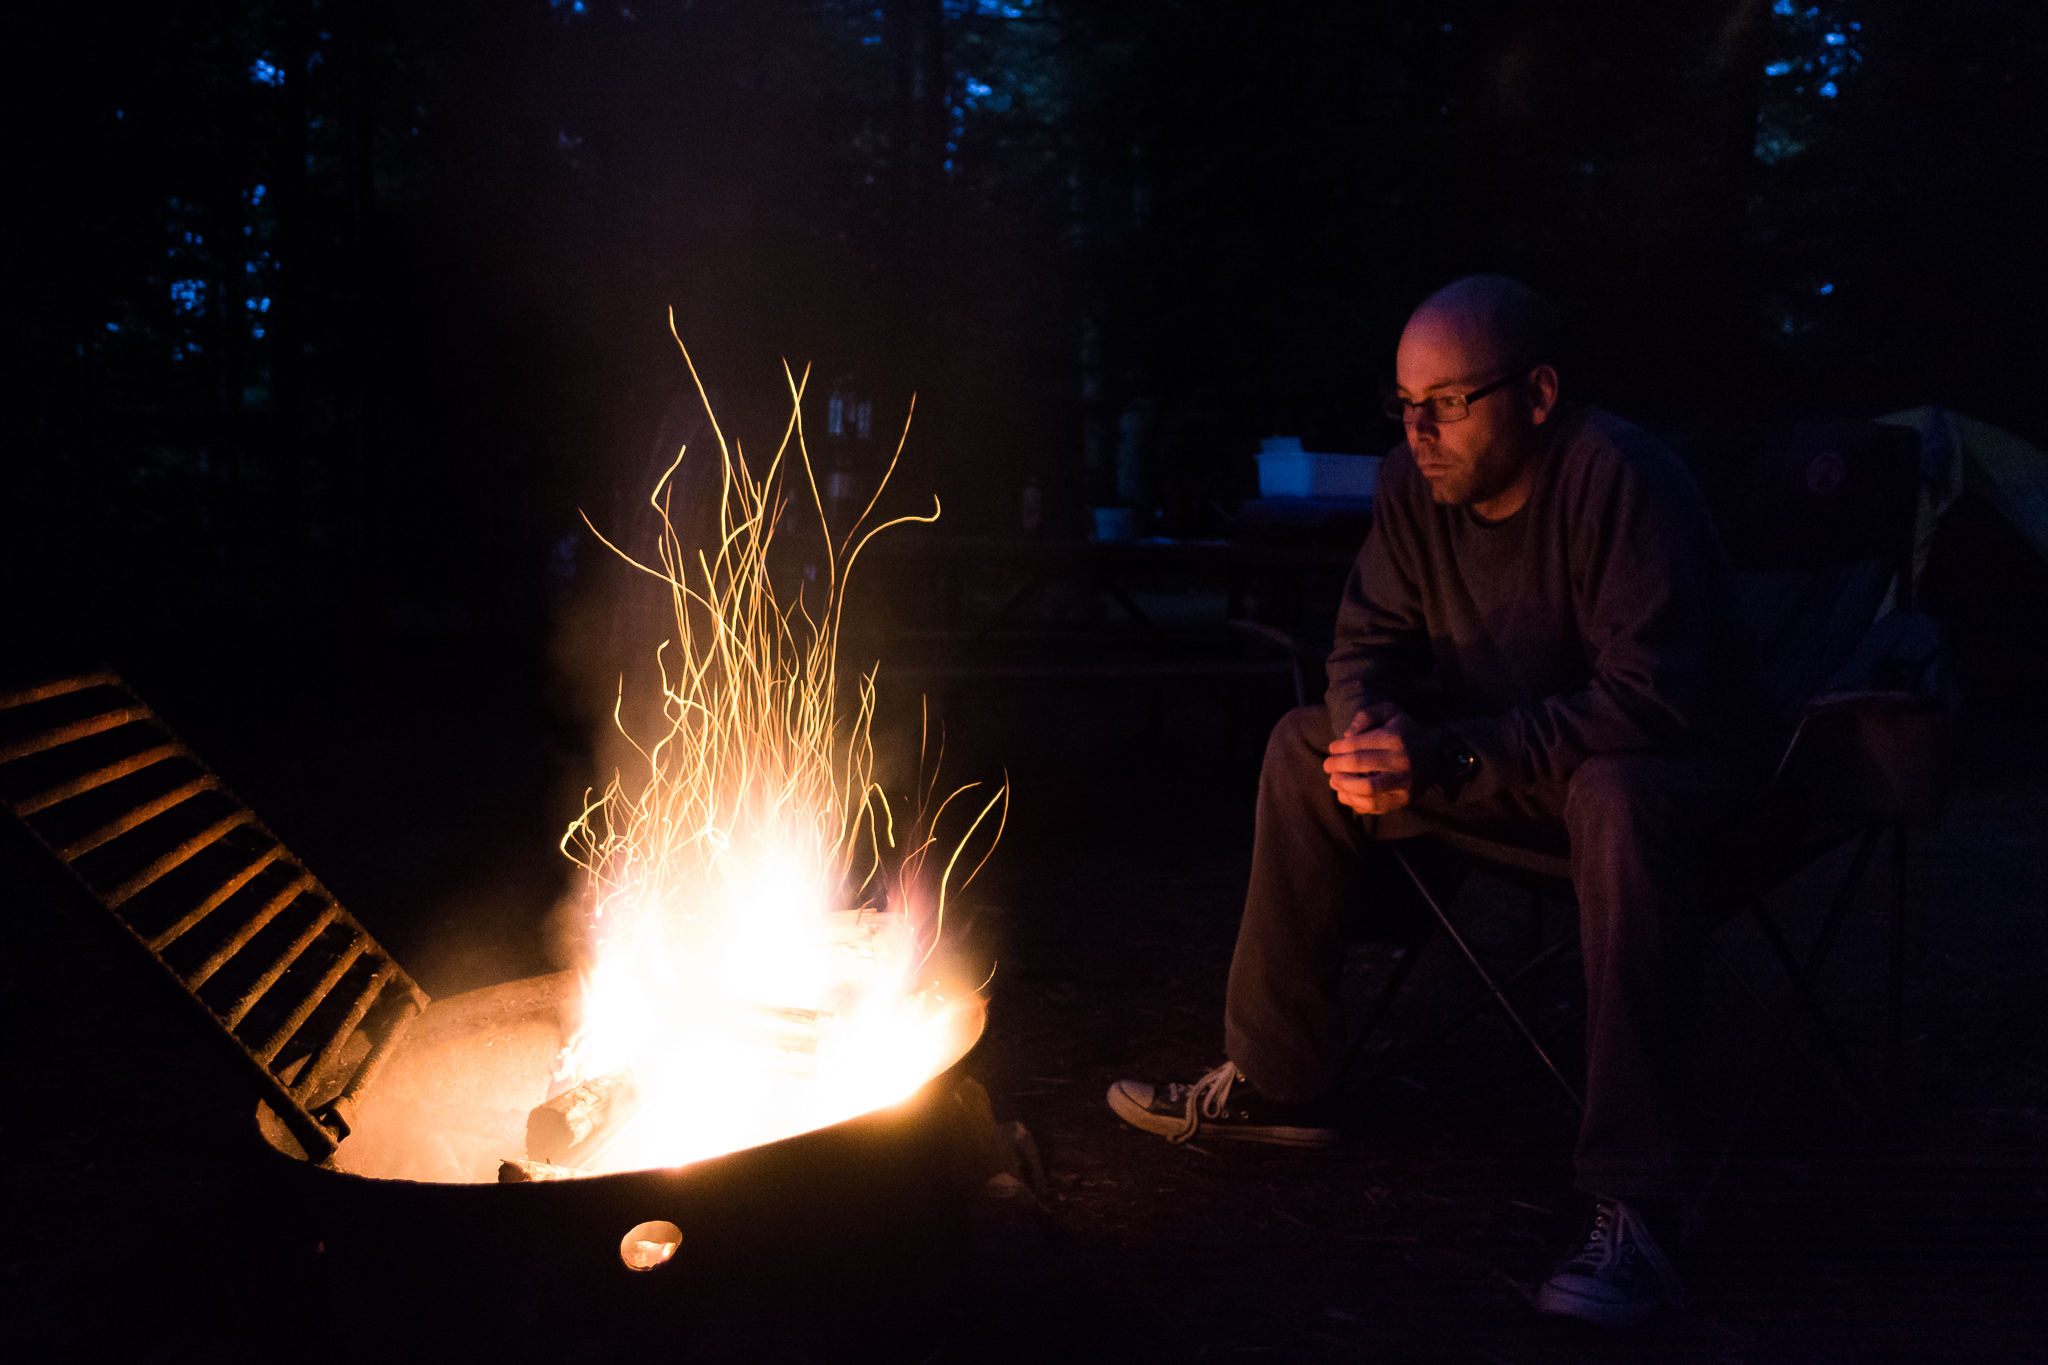 Sitting by the Fire (2s, f/3.5, ISO3200)